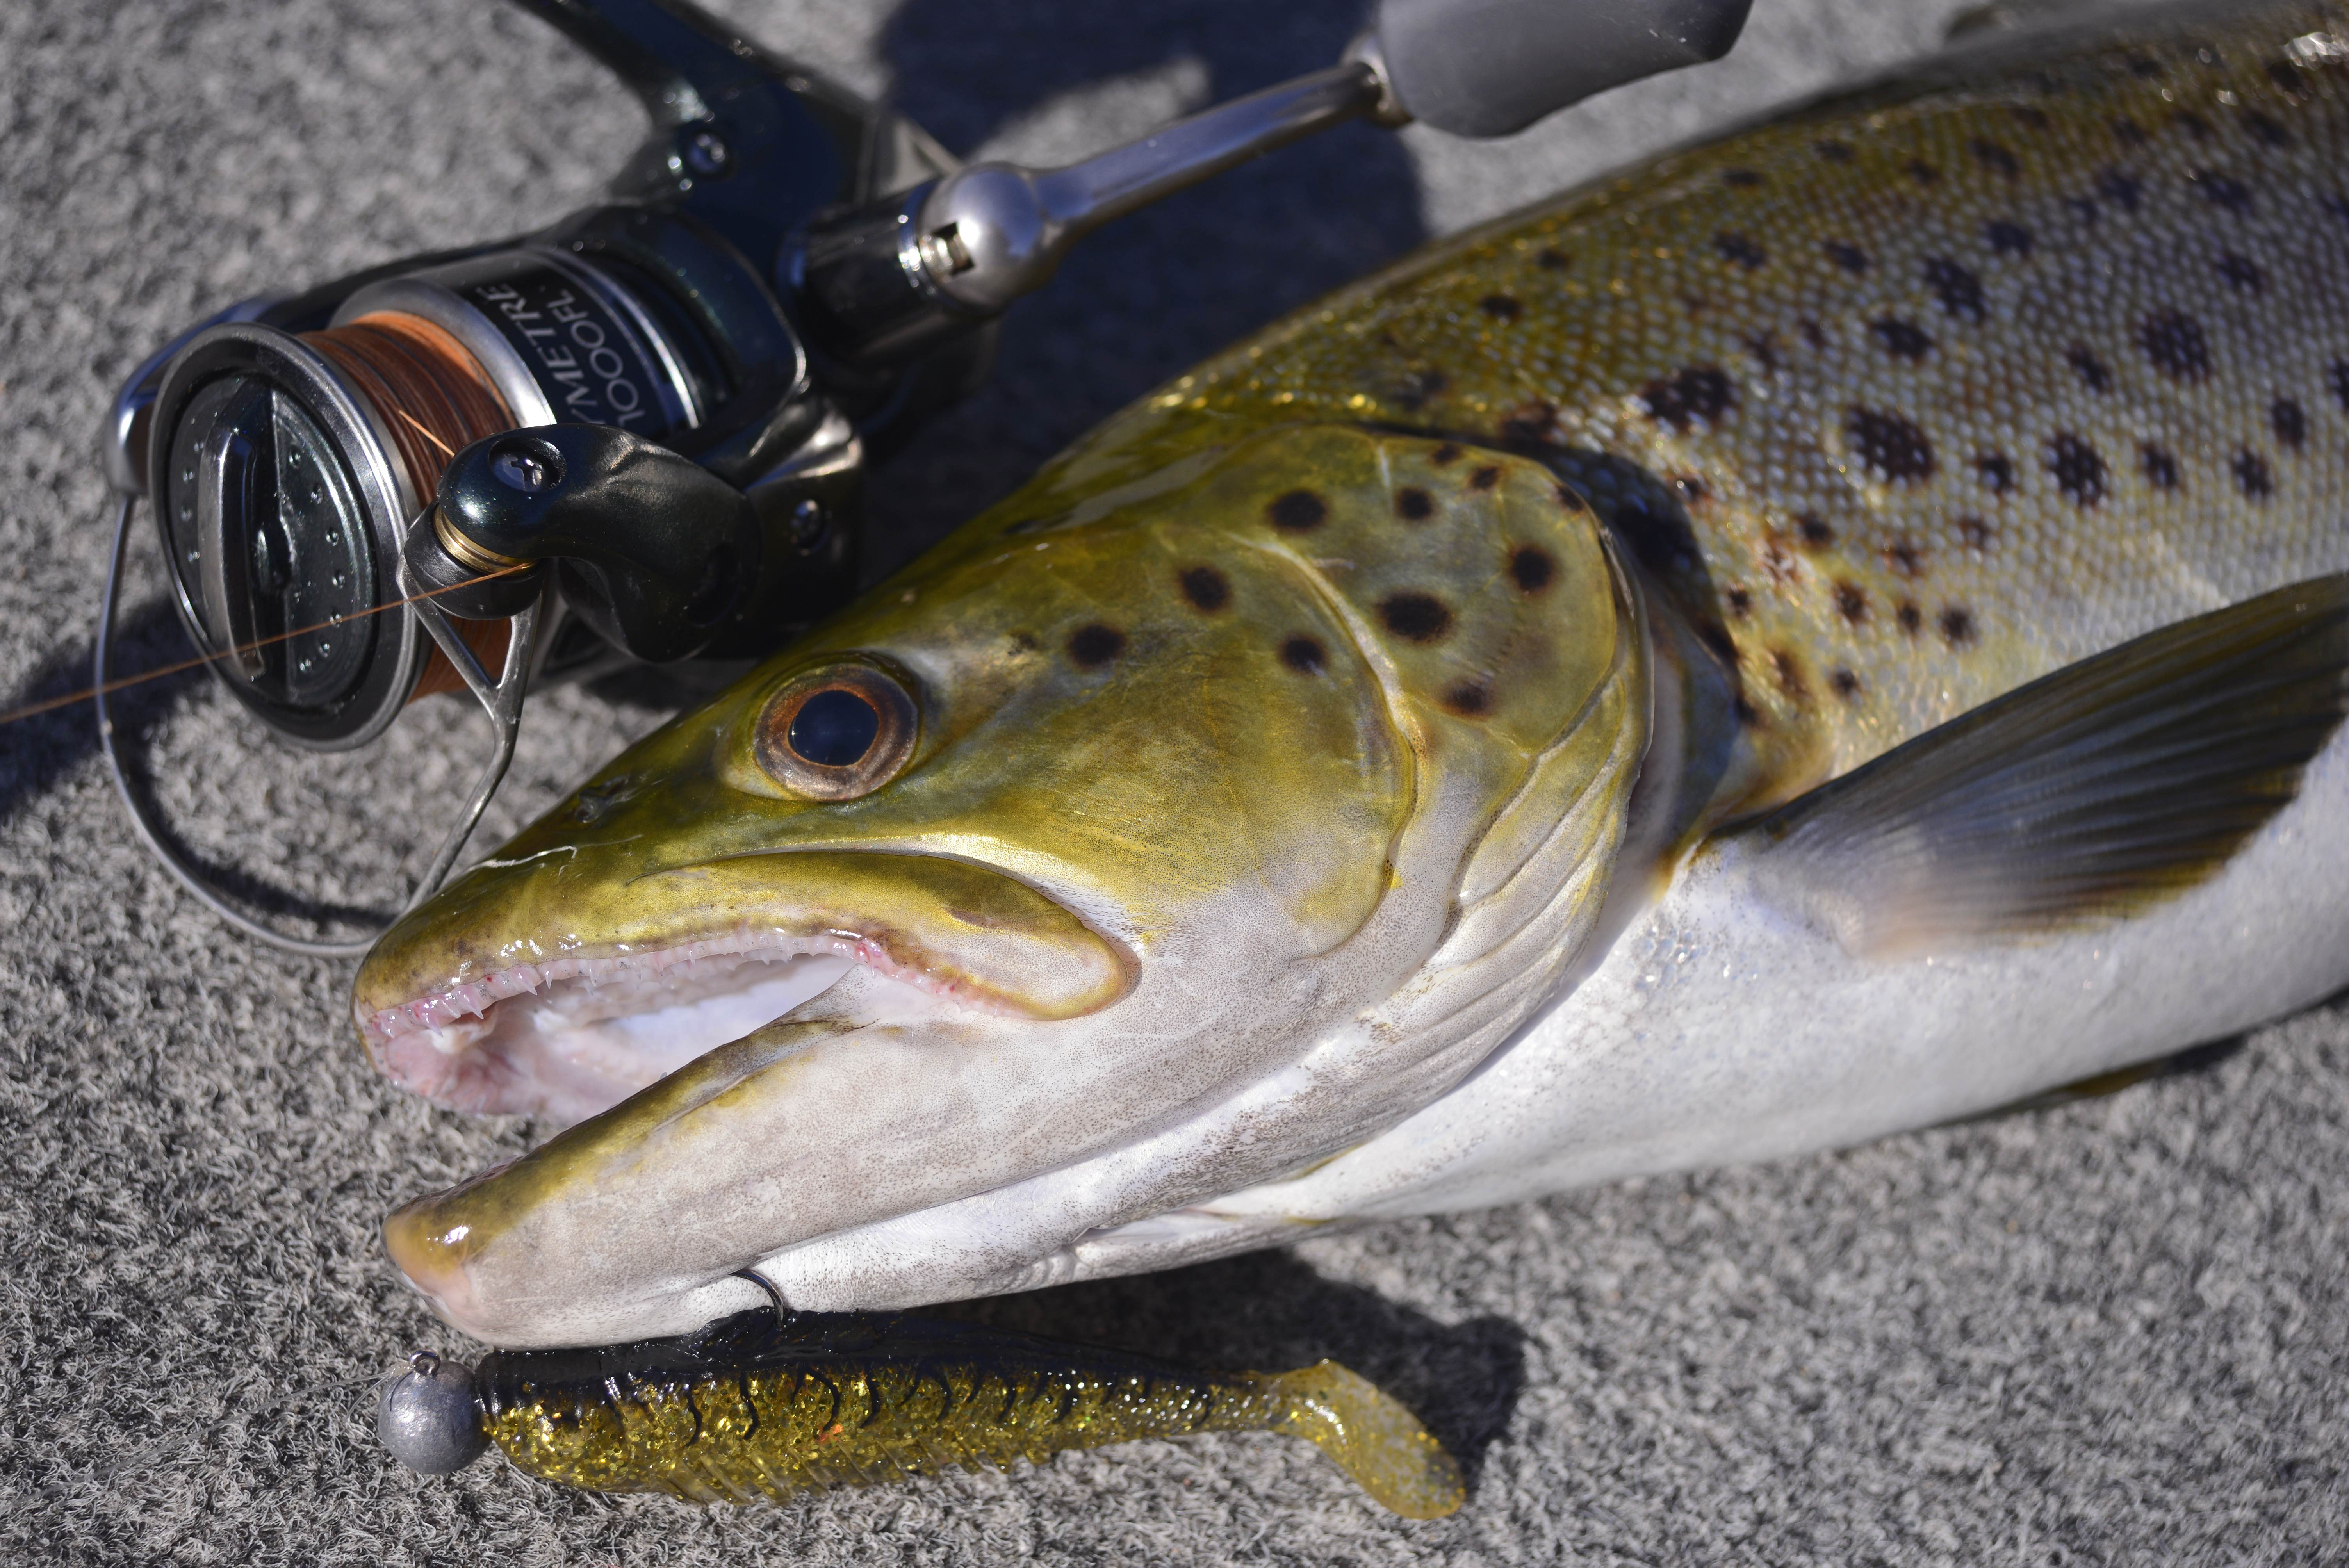 black singles in trout lake Rainbow trout lake fishing if you're fishing on a larger lake with a single rod, go with a medium-weight fishing rod and reel.